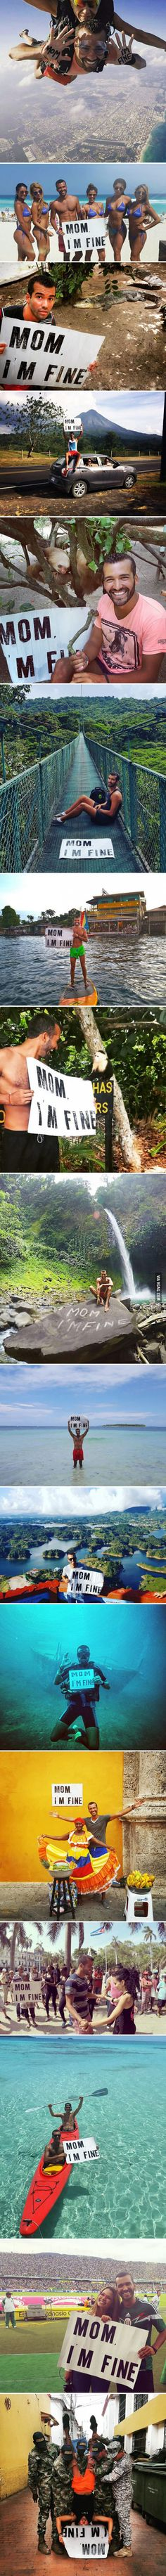 Guy Goes Traveling But Doesn't Forget To Tell His Mom He's OK